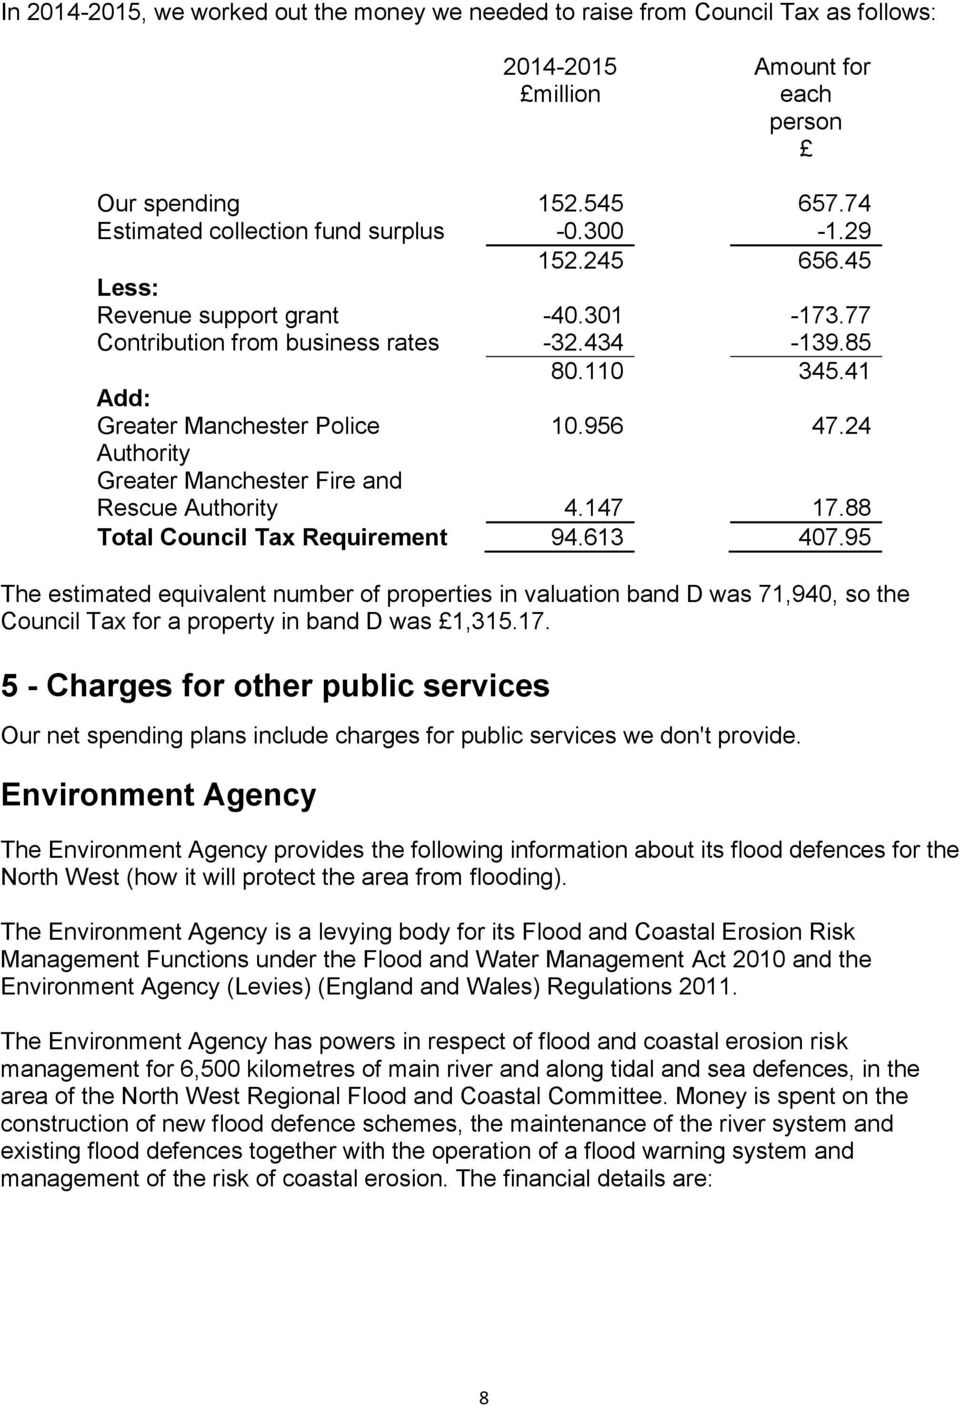 24 Authority Greater Manchester Fire and Rescue Authority 4.147 17.88 Total Council Tax Requirement 94.613 407.